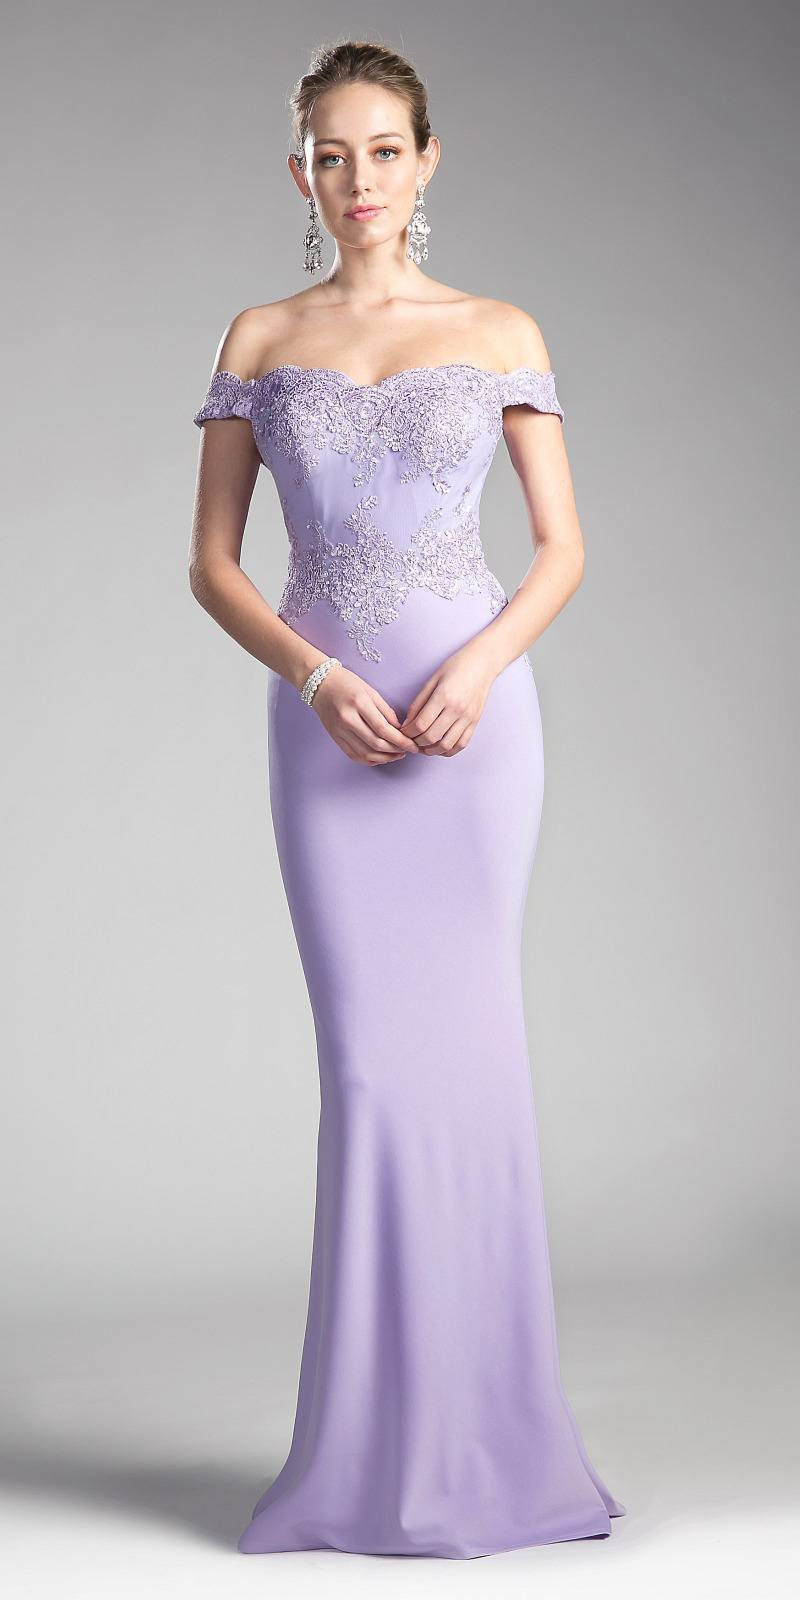 Cinderella Divine - CF158 Off Shoulder Stretch Crepe Satin Gown Special Occasion Dress XS / Lilac